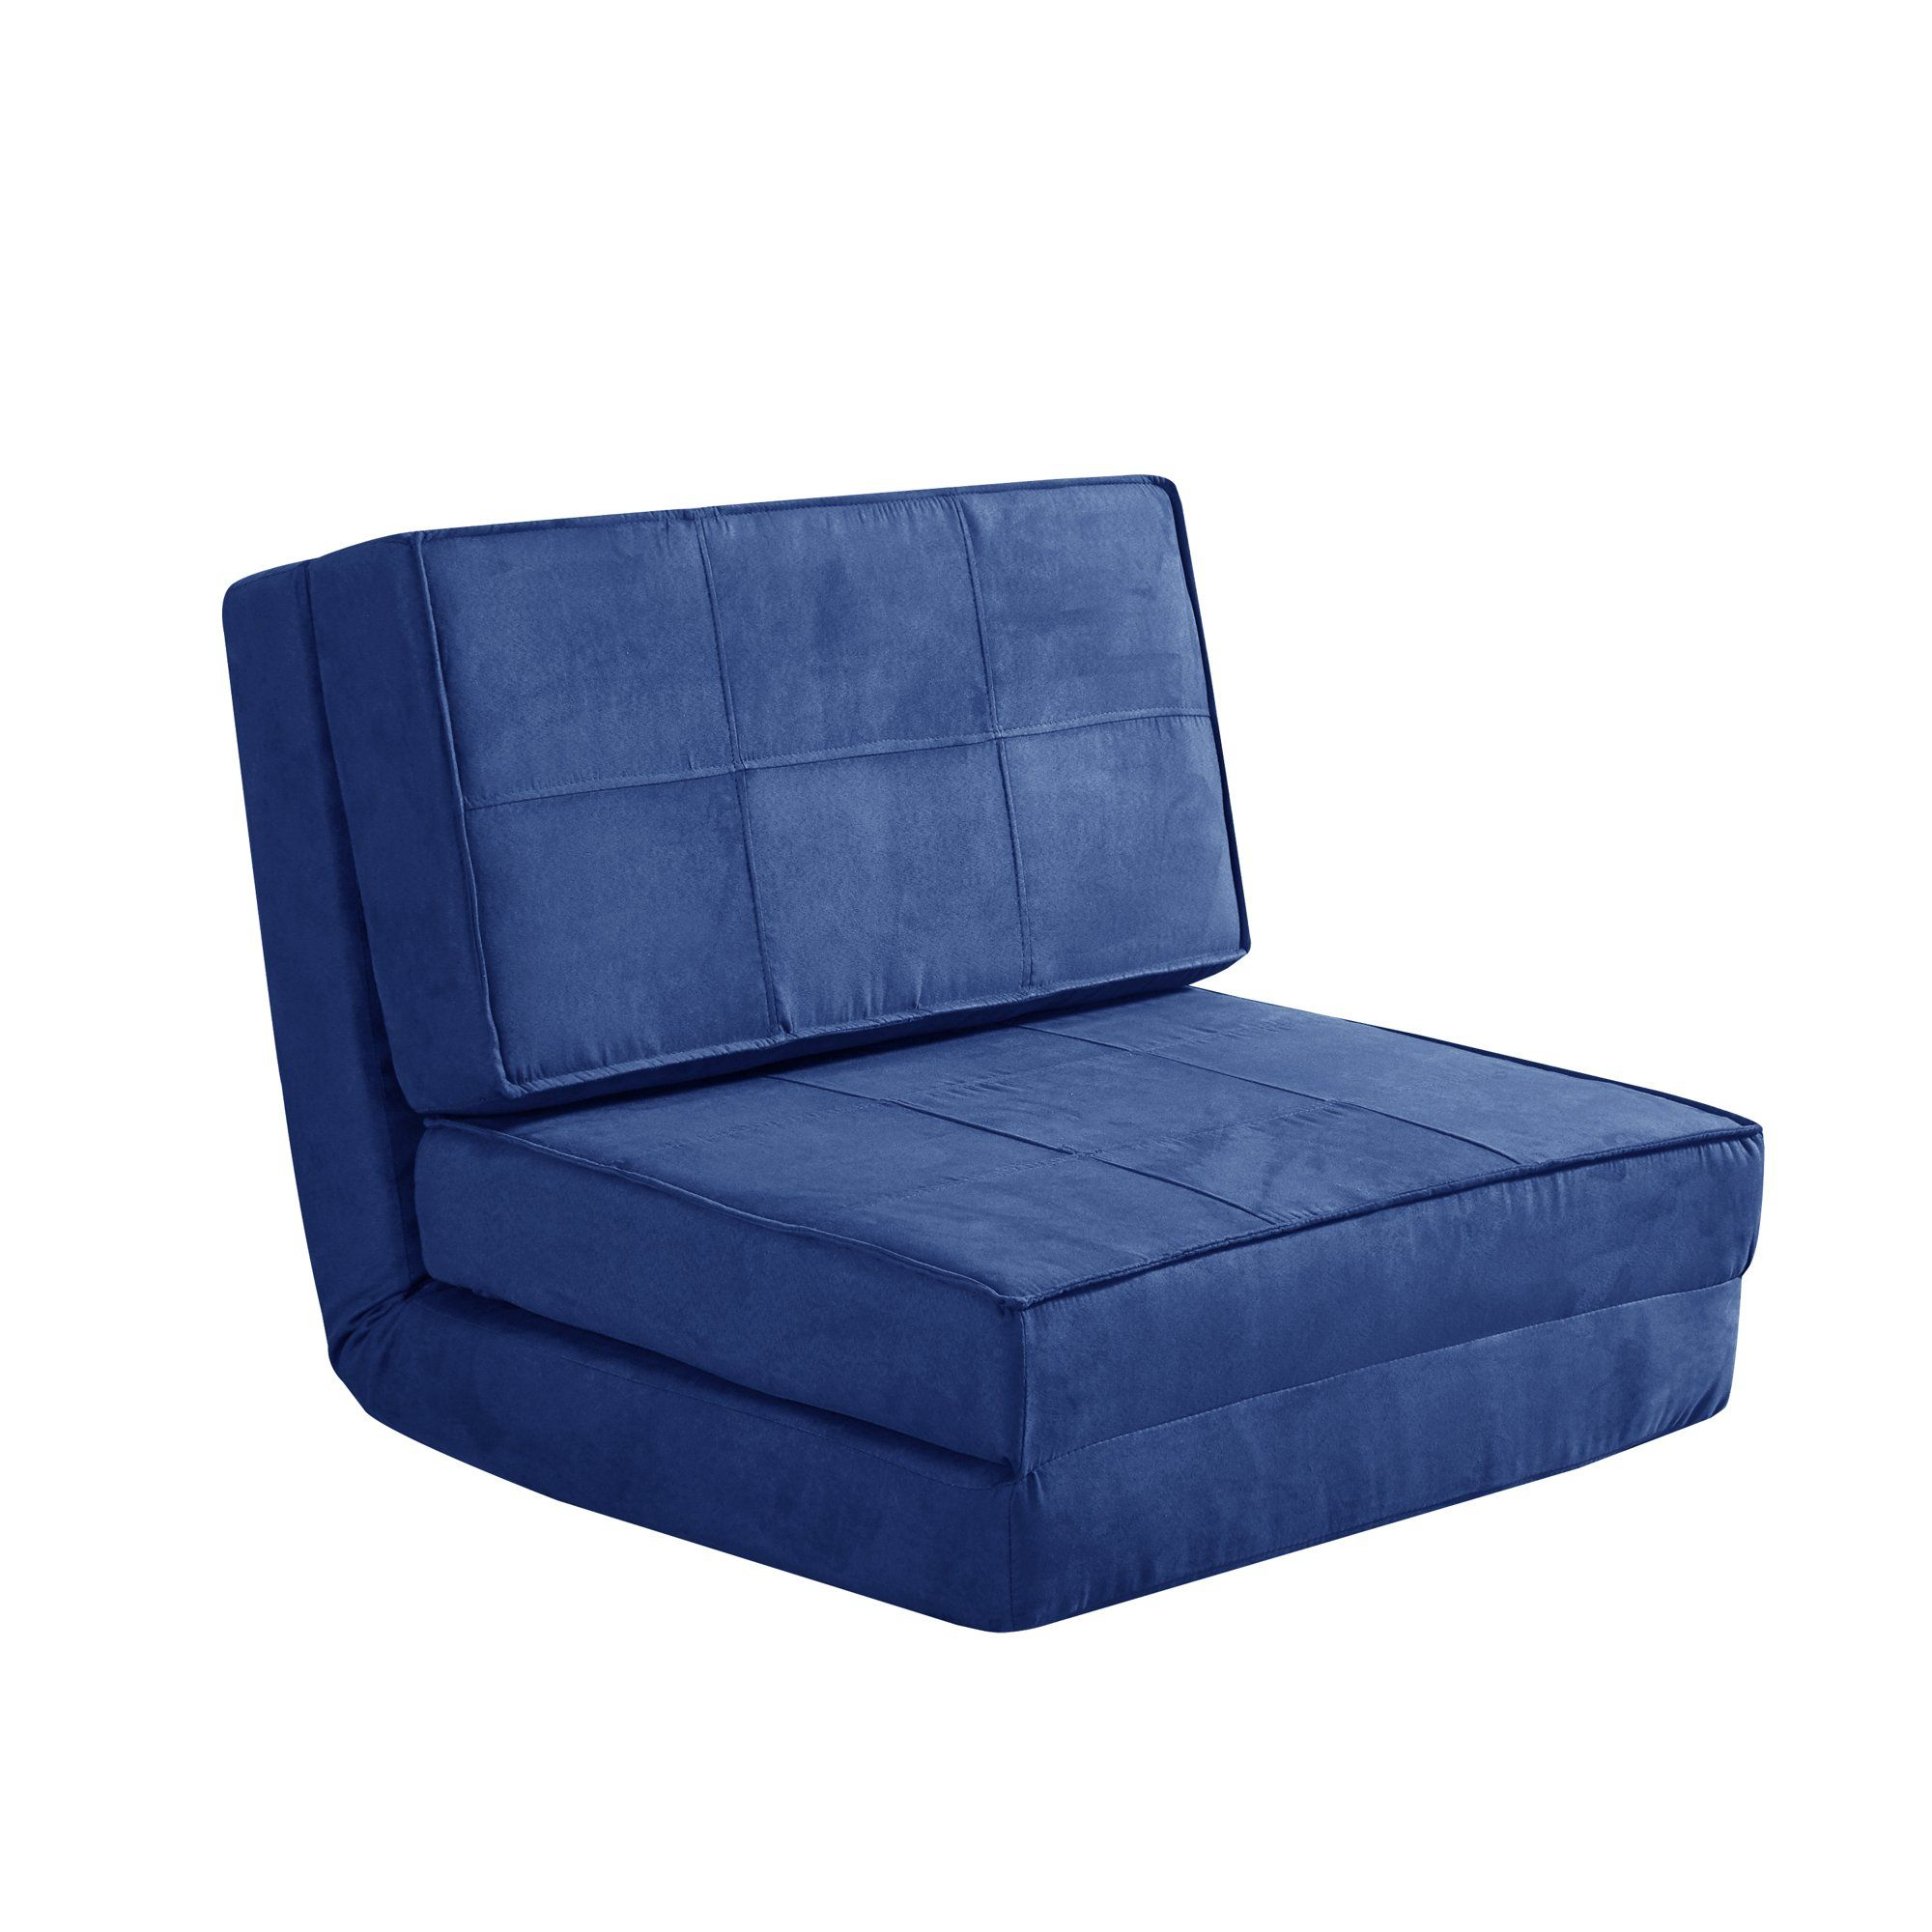 Your Zone Navy Flip Chair Available In Multiple Colors Walmart Com In 2020 Kids Lounge Chair Chair Small Apartment Room